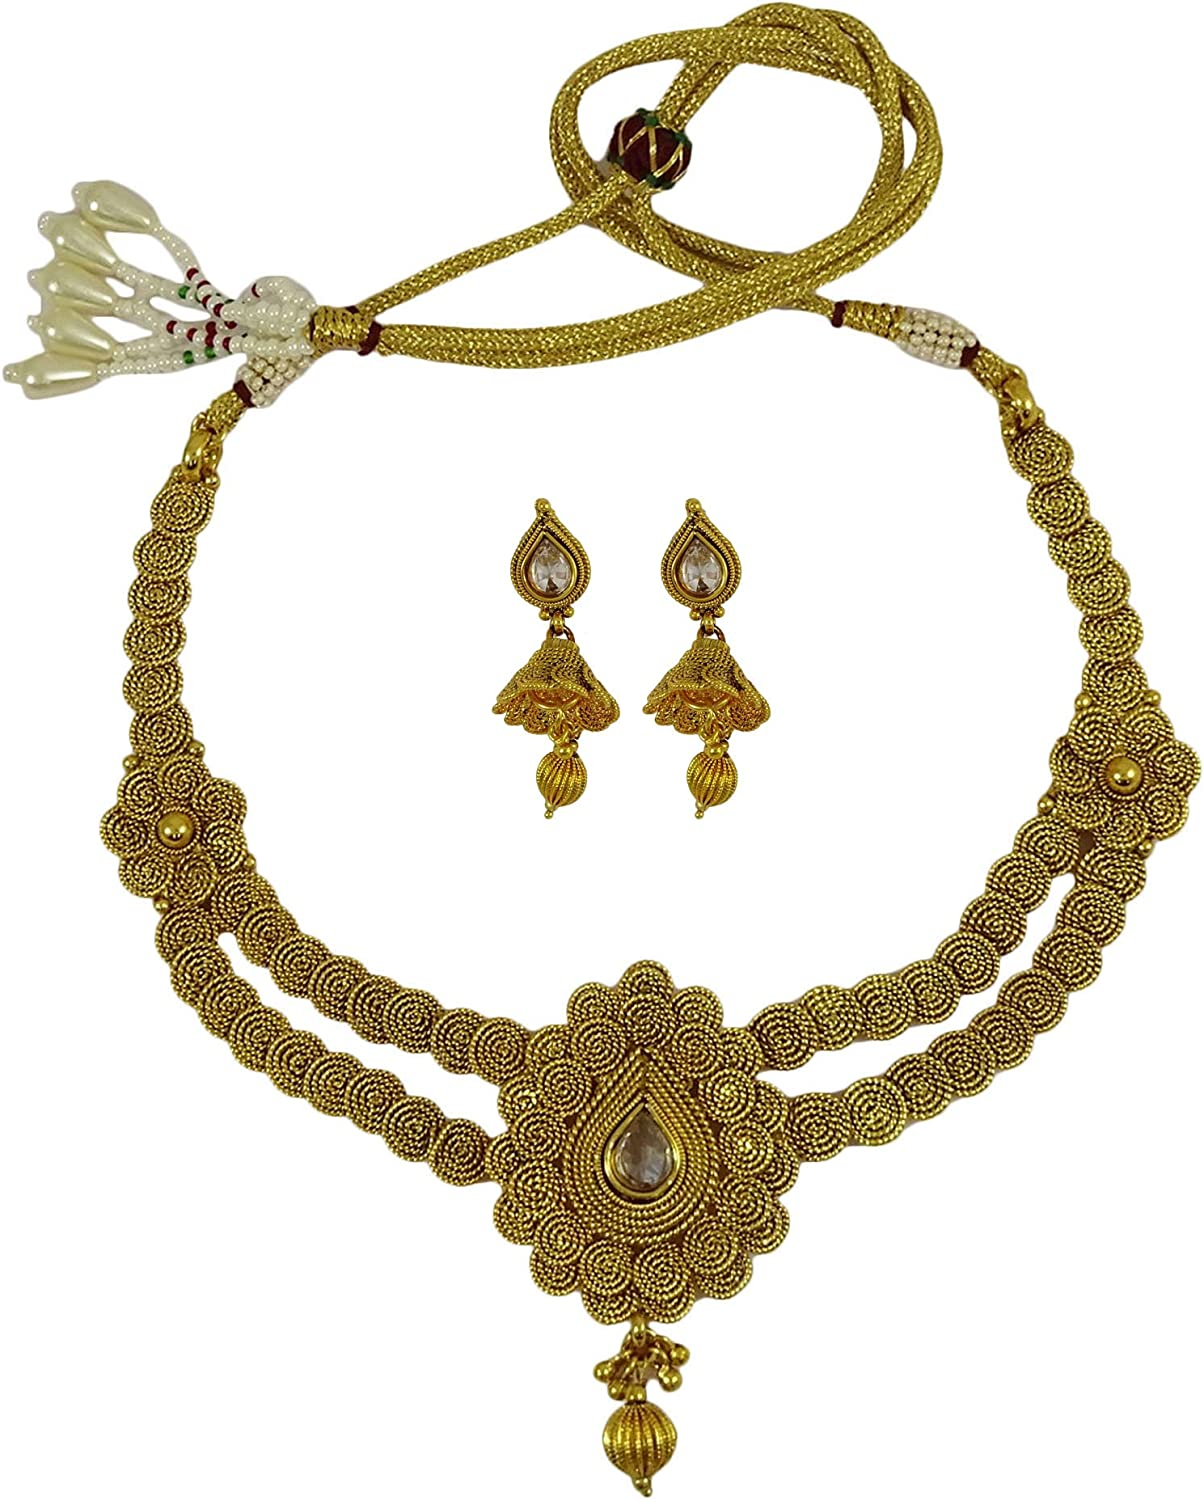 Matra Goldtone Traditional Designer South Indian Style Necklace Set Bollywood Jewelry